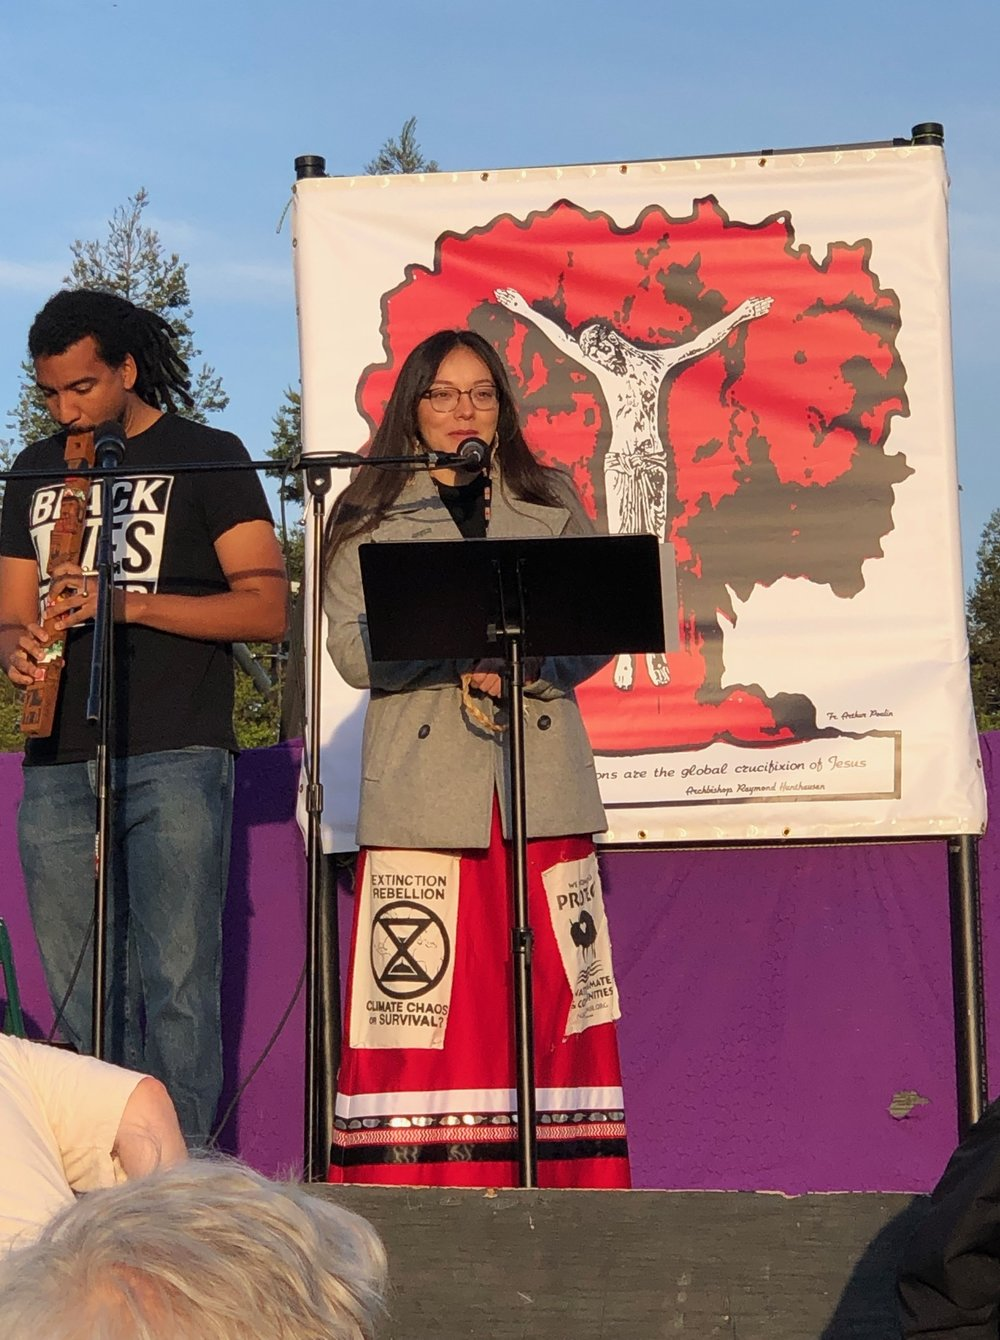 Isabella Ziti from Idle No More, SF Bay Area and Benjamin Mertz give an opening blessing – Honoring the Land and the Ancestors.